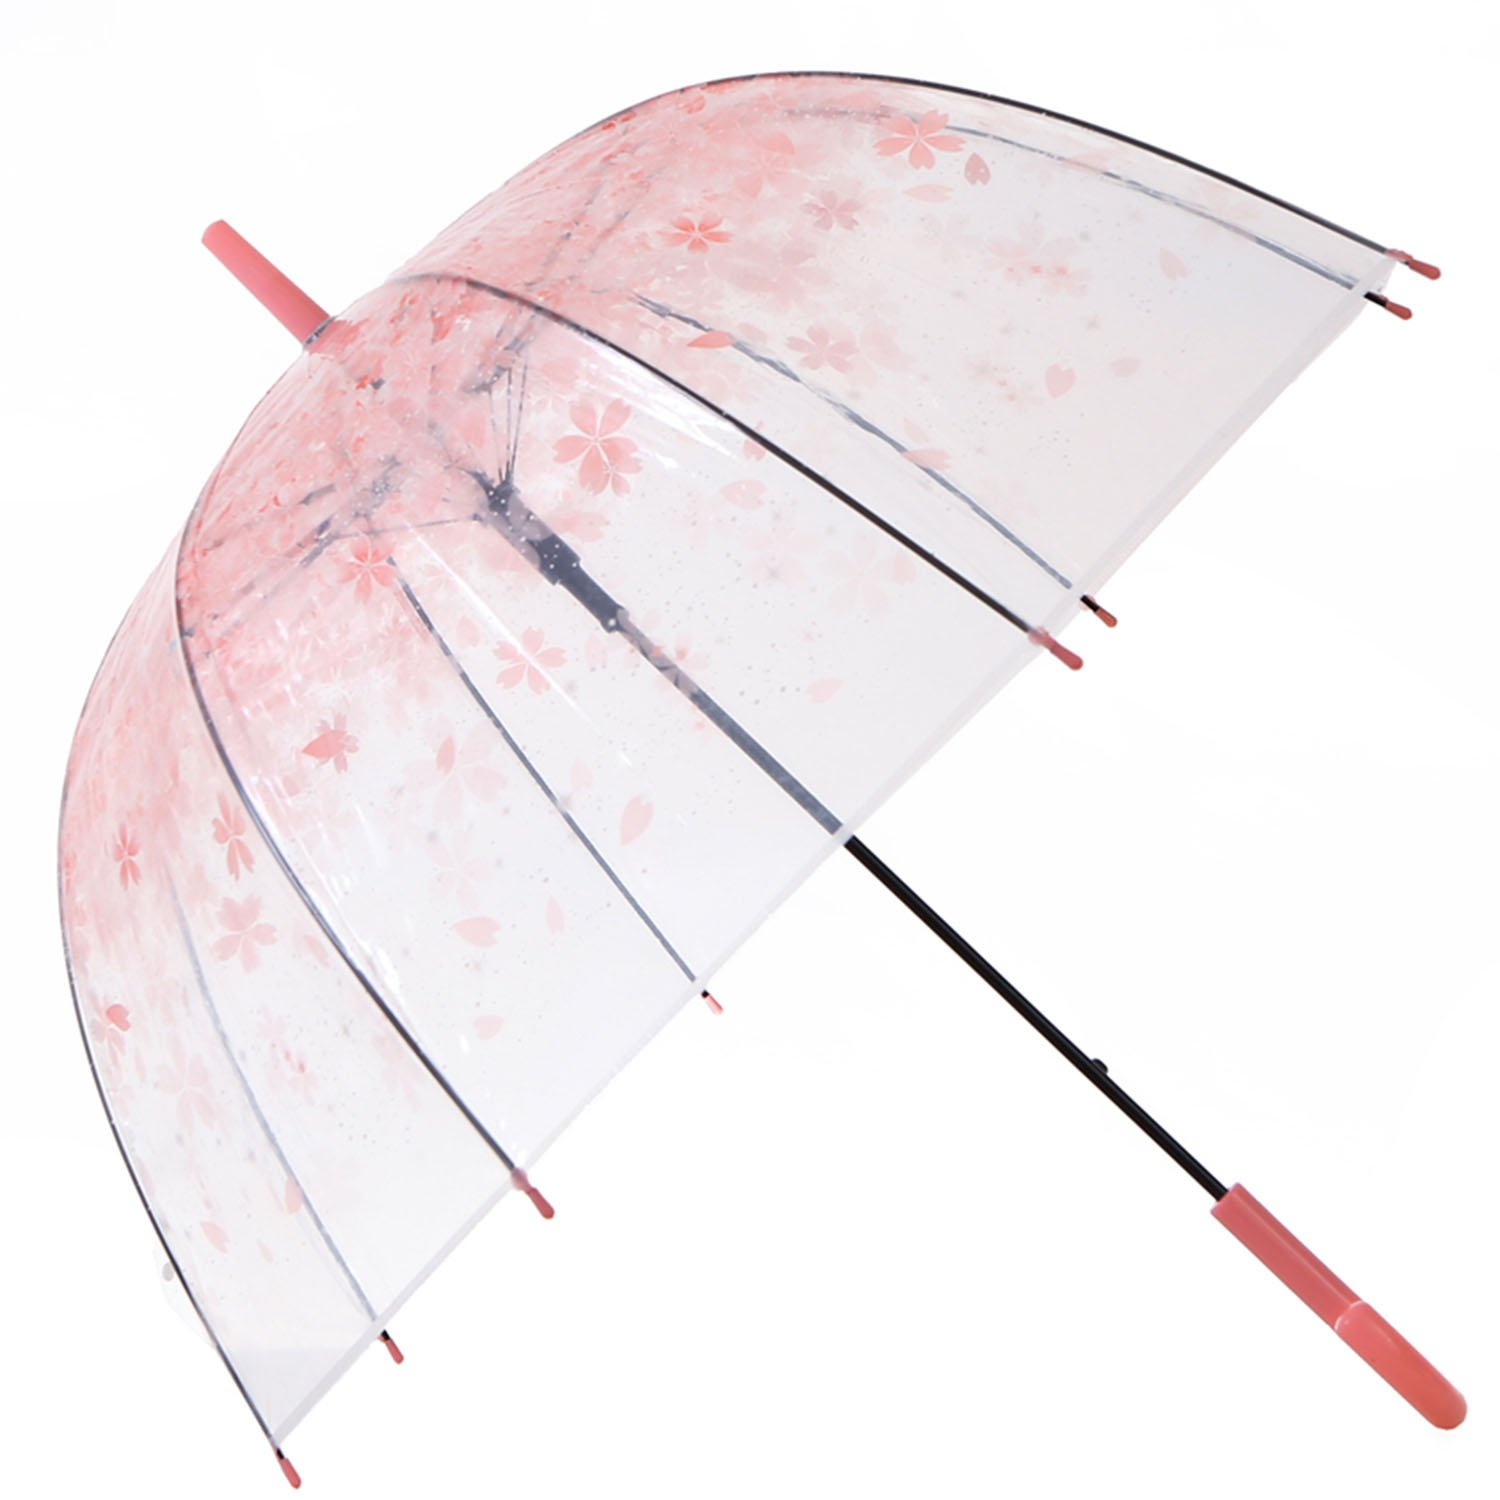 HAOCOO Cherry Blossoms Clear Umbrella,Bubble Transparent Fashion Dome Auto Open Umbrella Windproof for Outdoor Weddings (Pink)